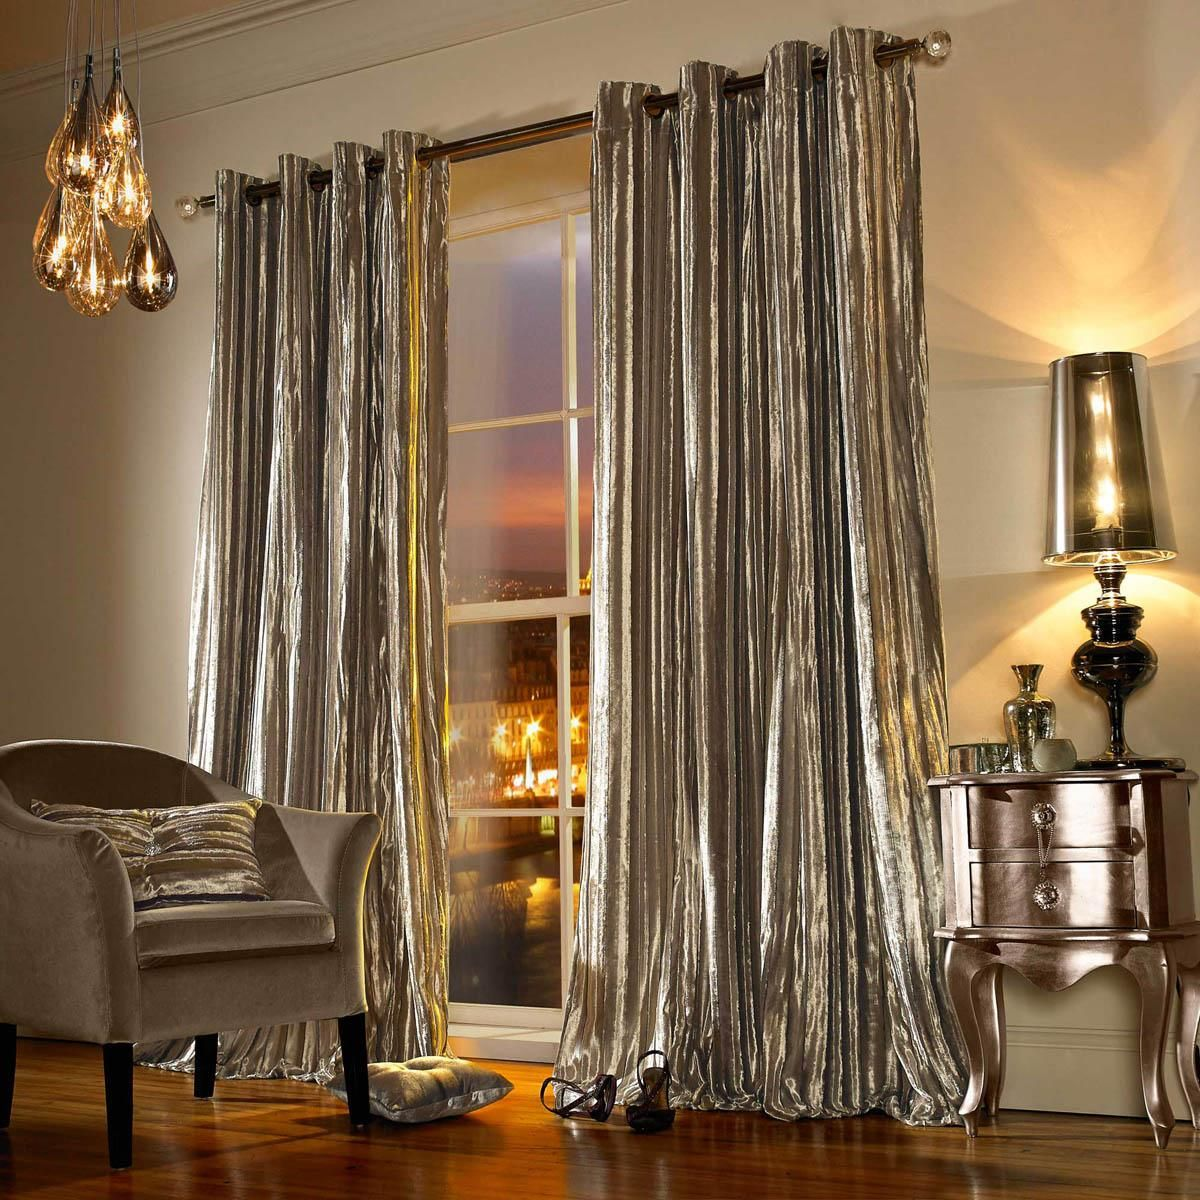 Windsor teal eyelet curtains harry corry limited - Kylie Minogue Iliana Ready Made Eyelet Curtains